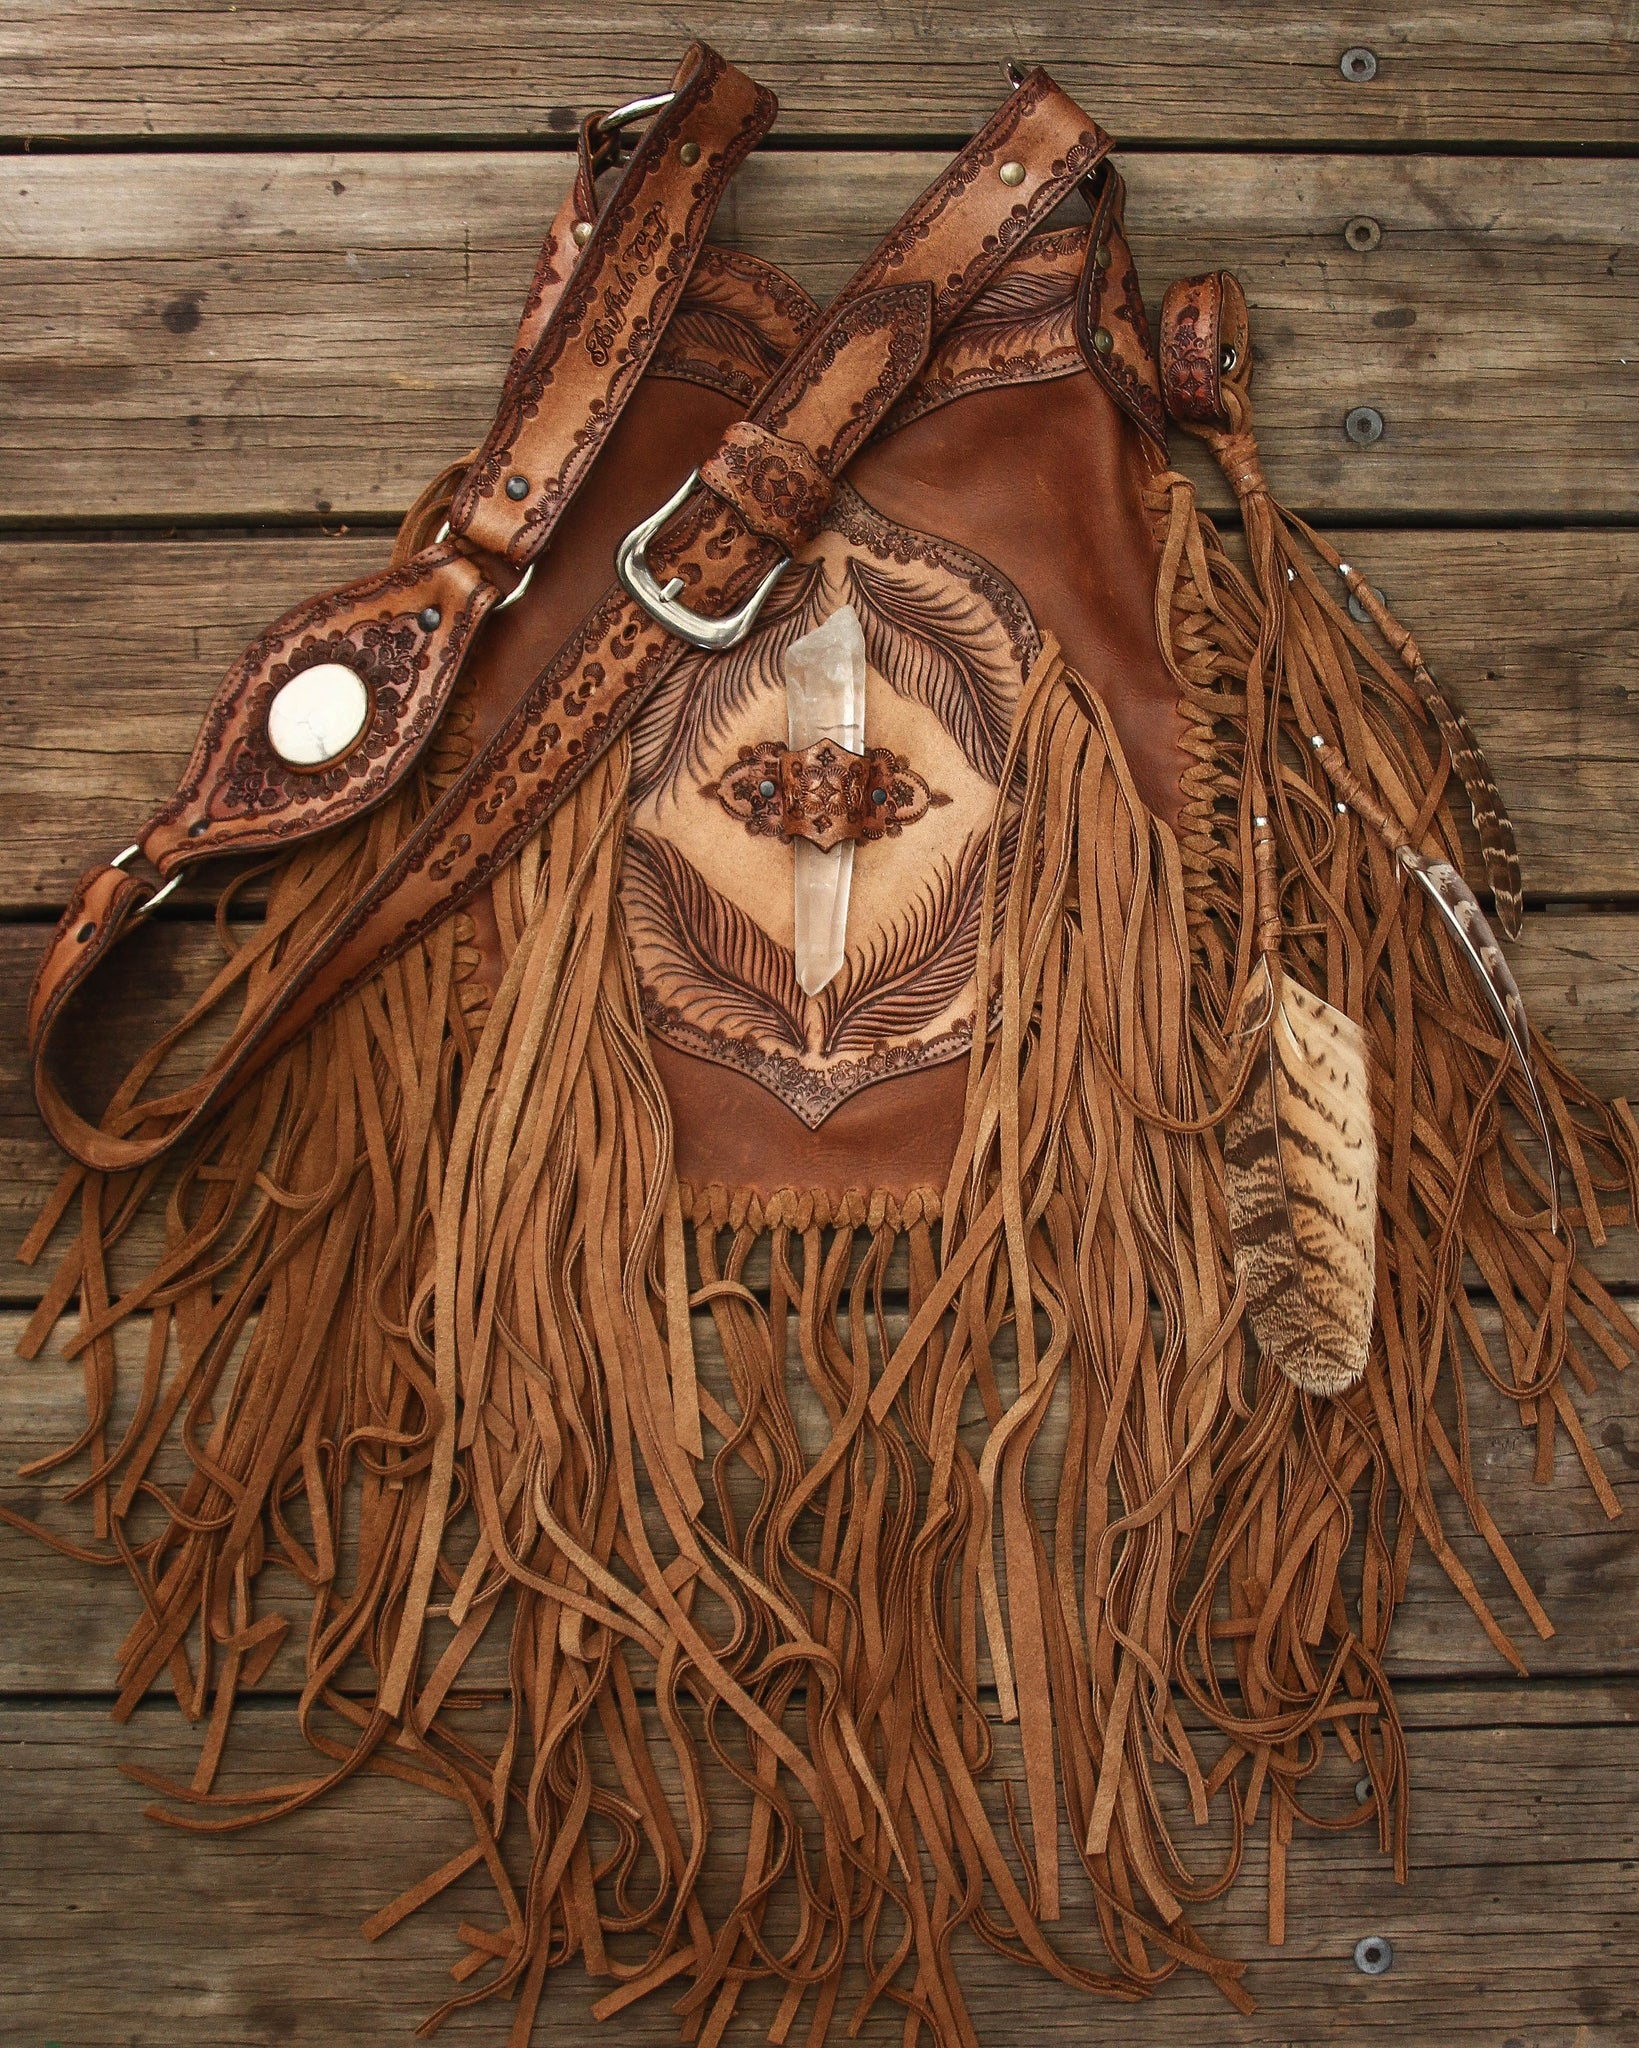 Apache Tasseled Bag with Quartz Crystal in distressed tan leather with suede tassels.